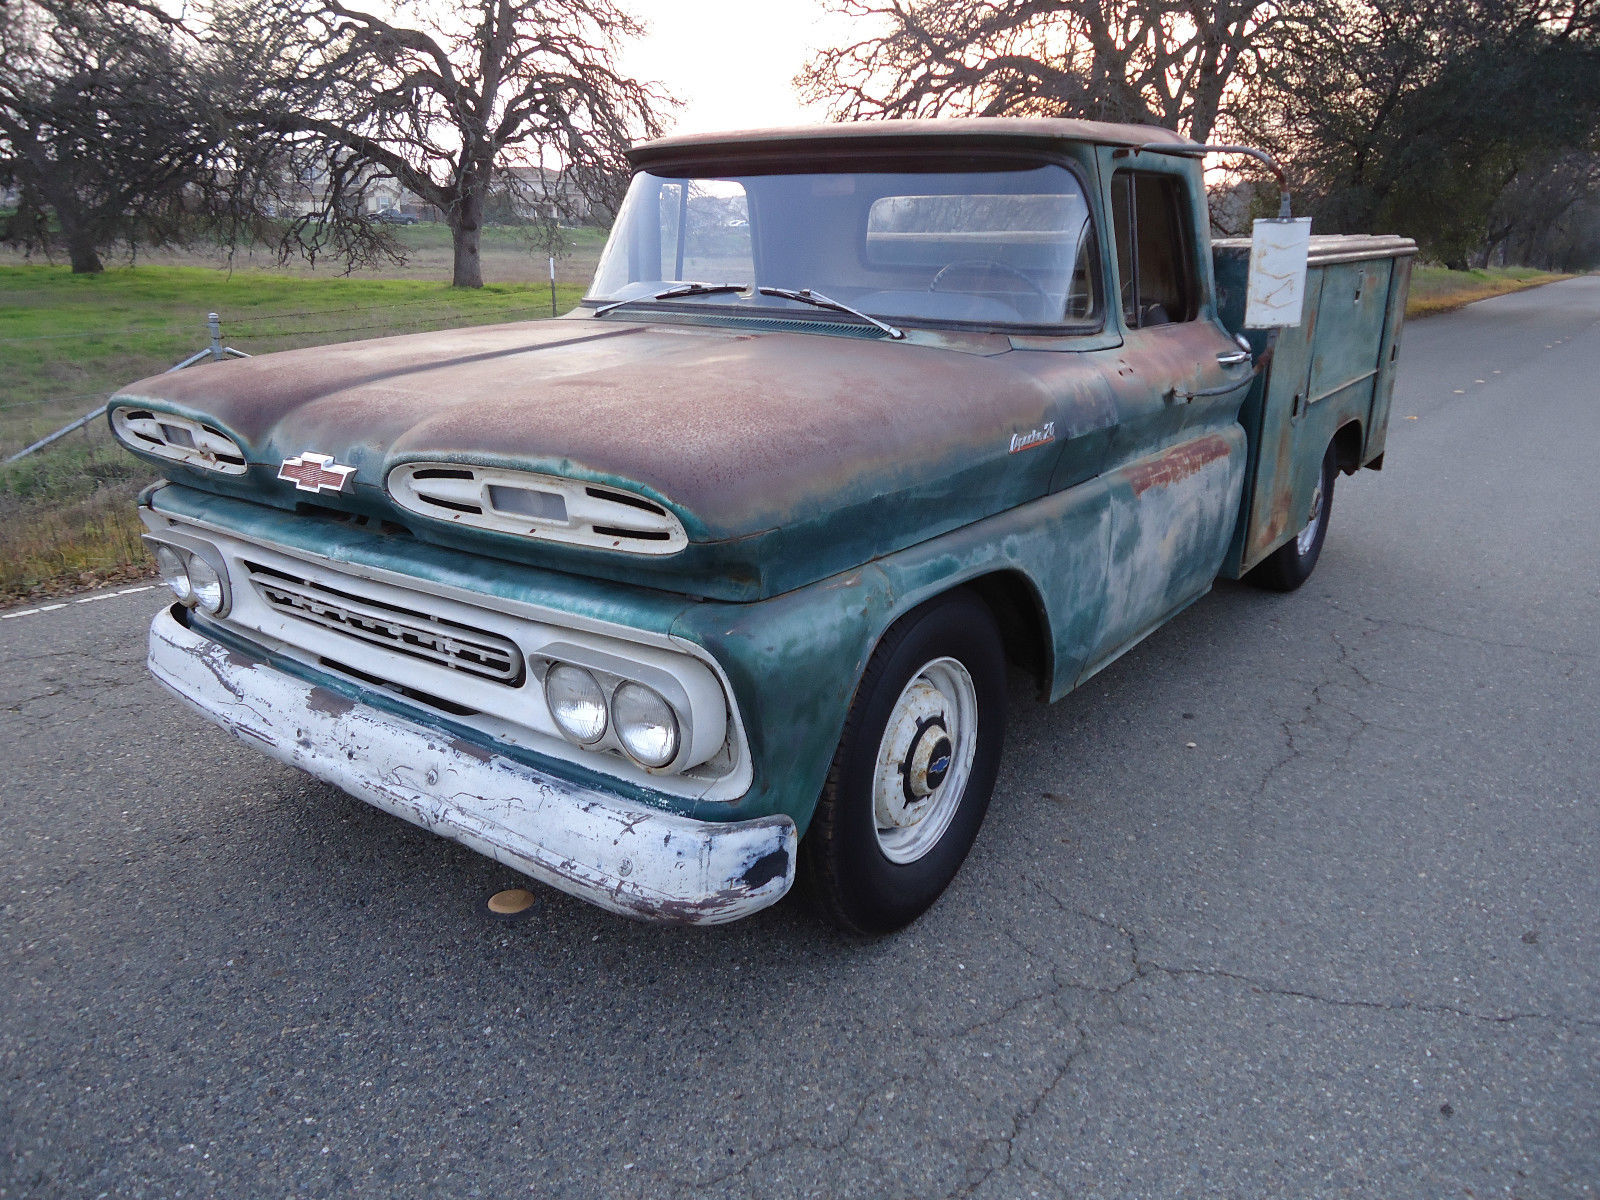 California Native 1961 Chevy Utility Bed Truck With Natural Patina C10 Pickup For Sale In Lincoln United States